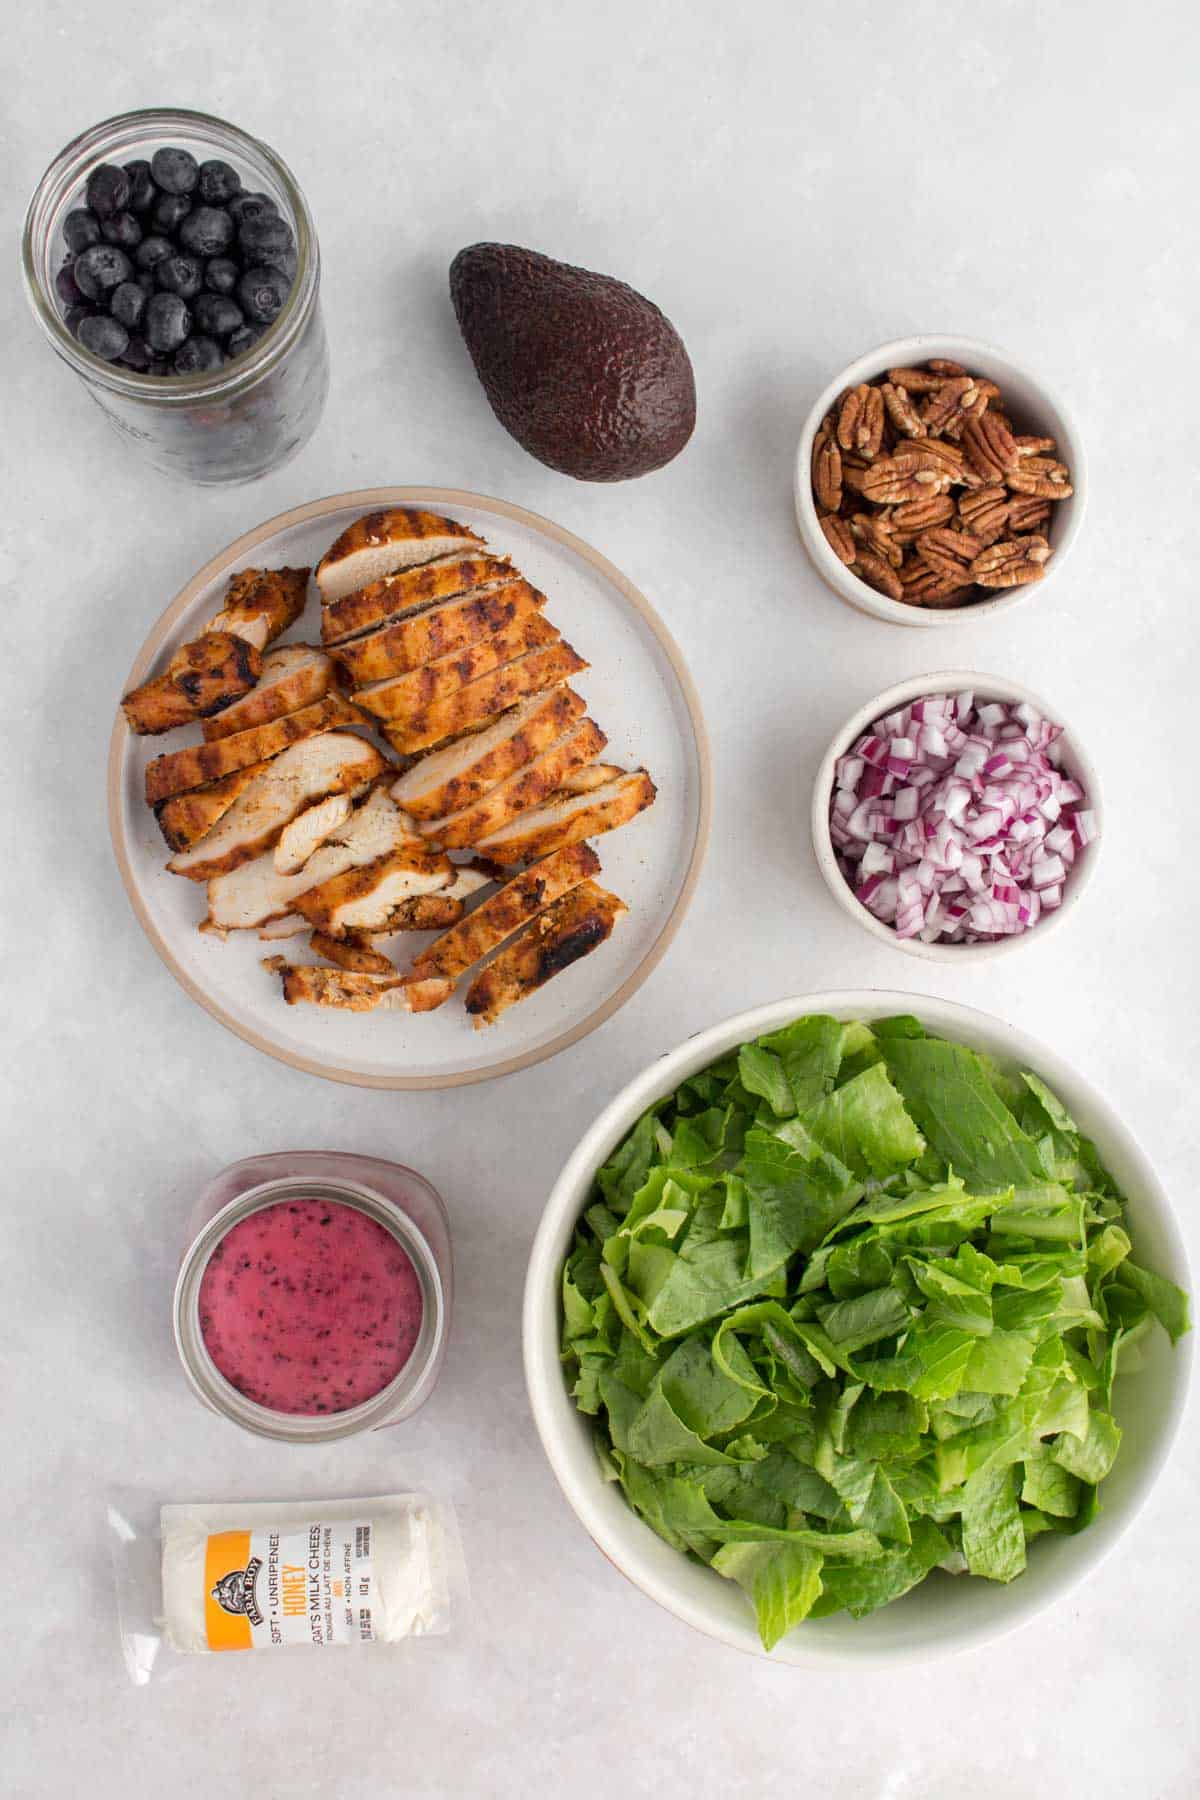 Ingredients needed to make a grilled chicken salad with blueberries.